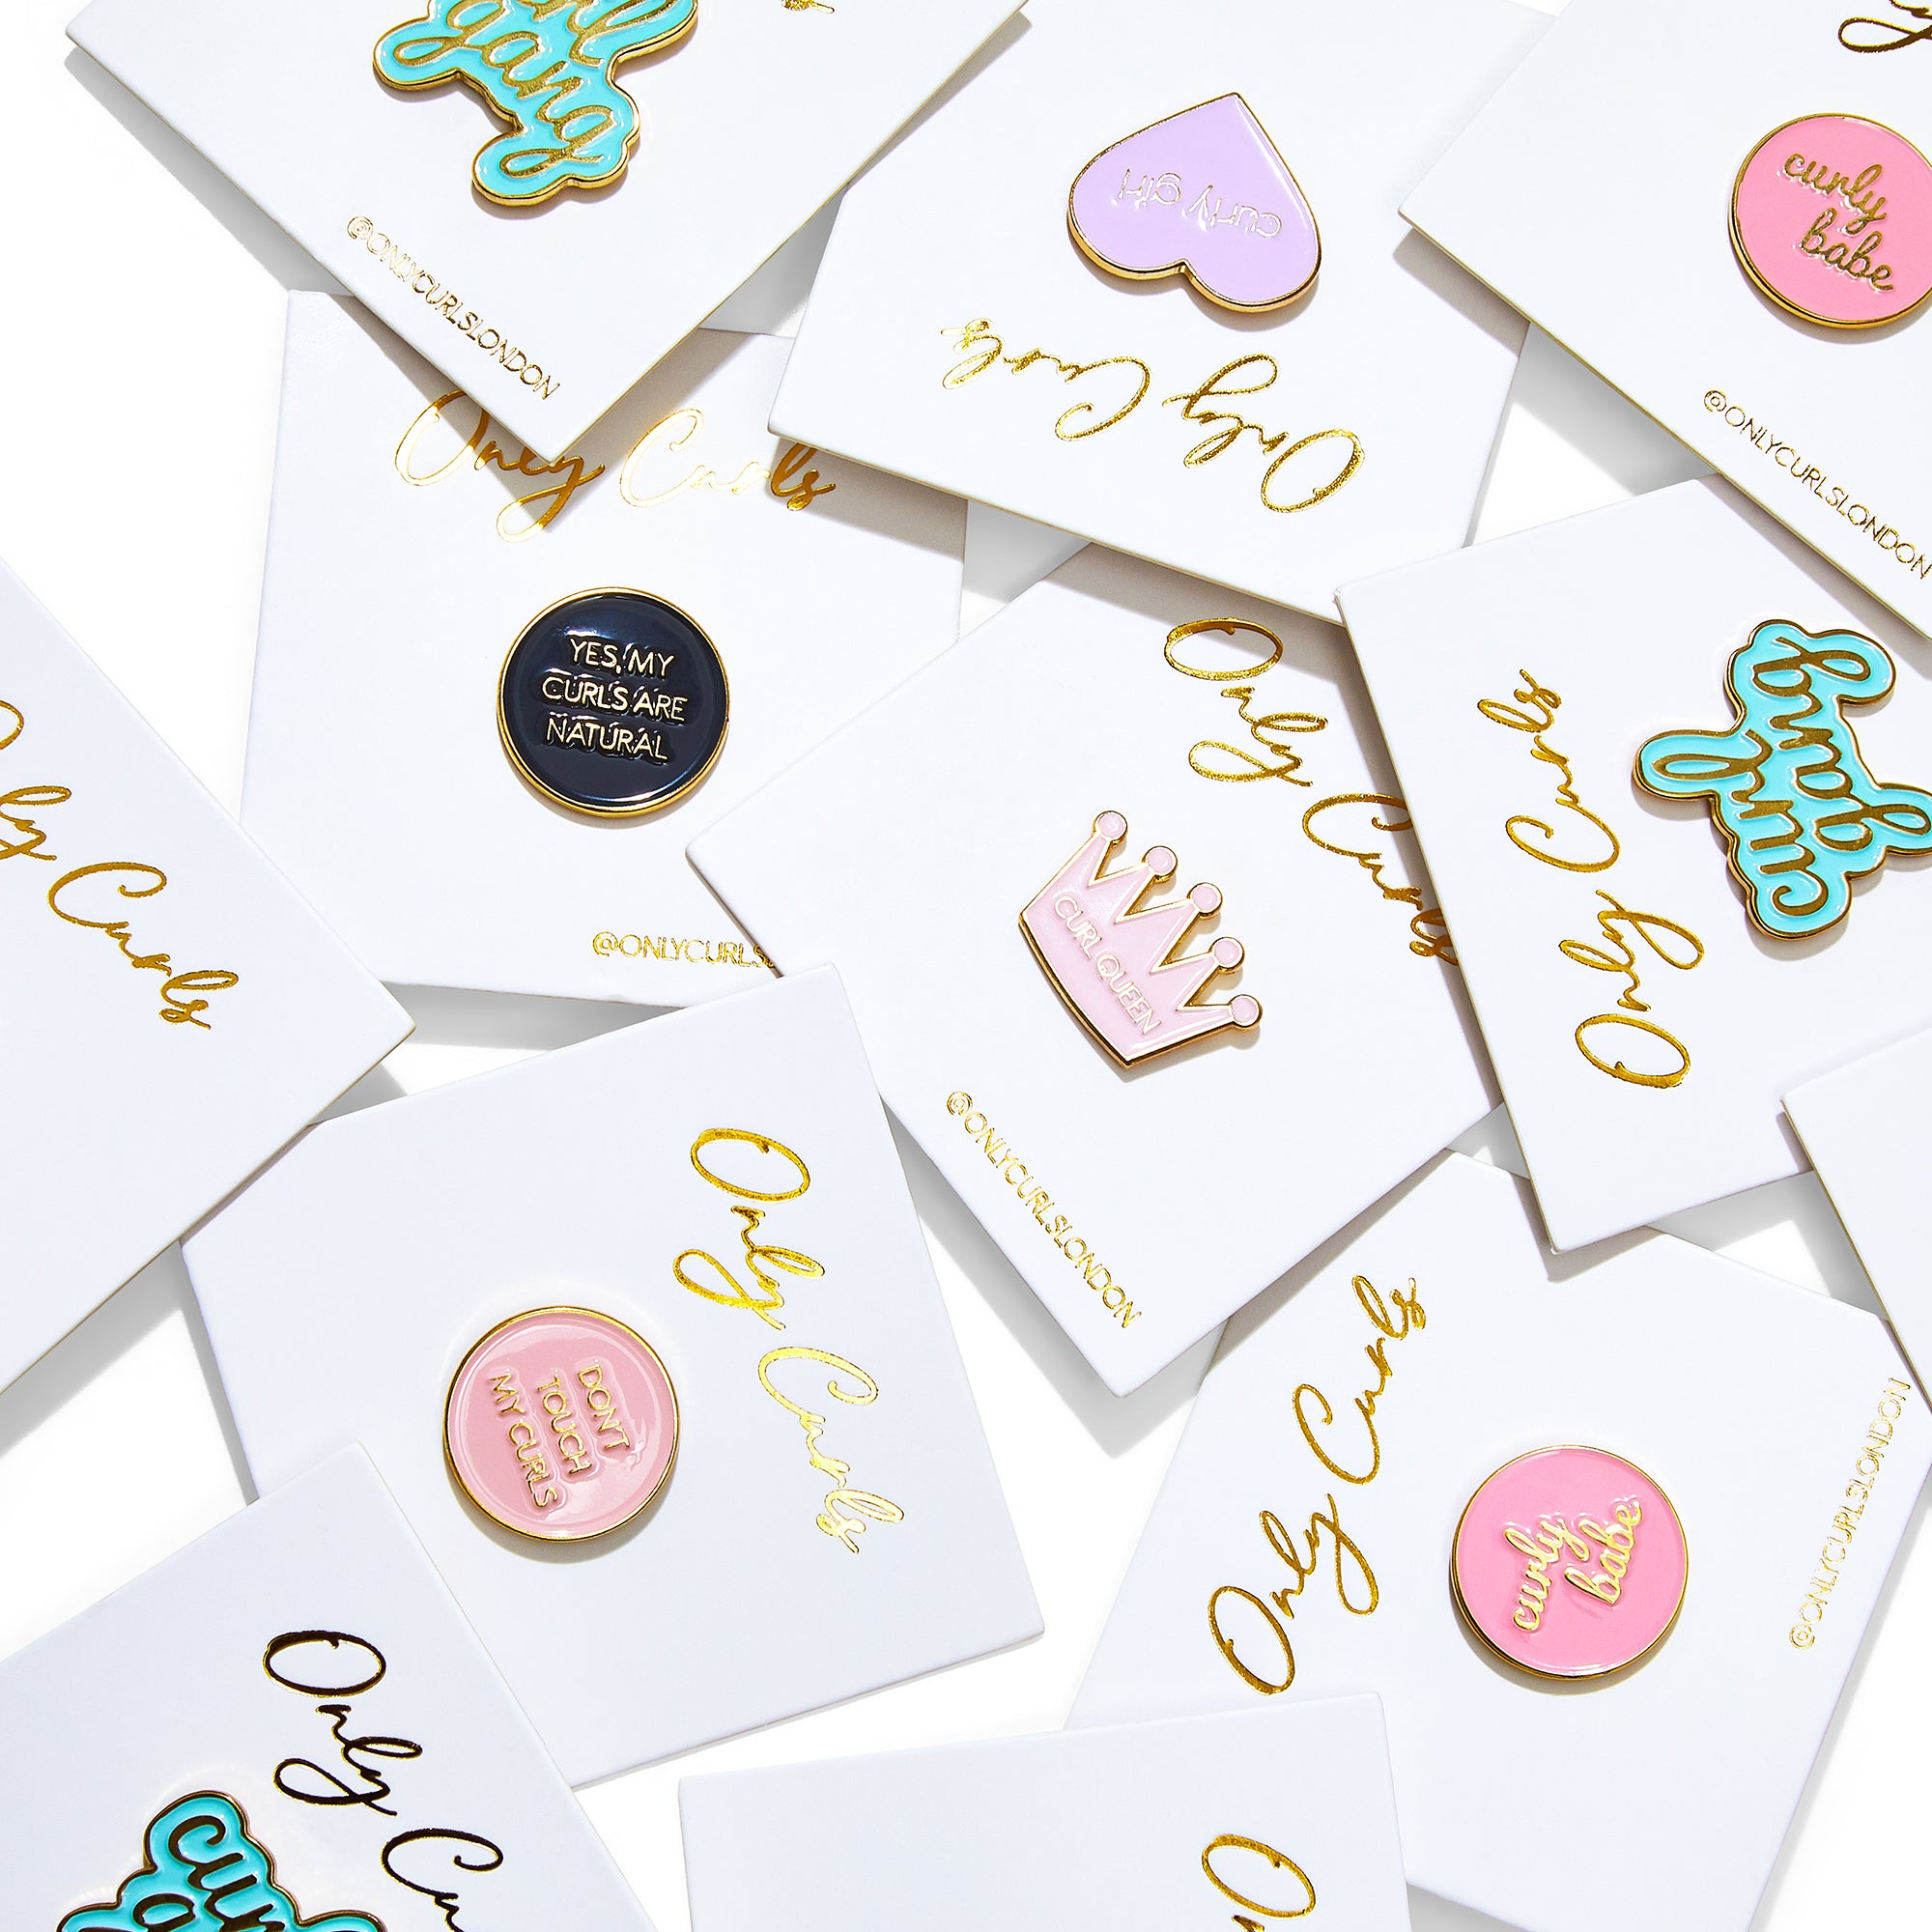 Only Curls Curly Pin Badges